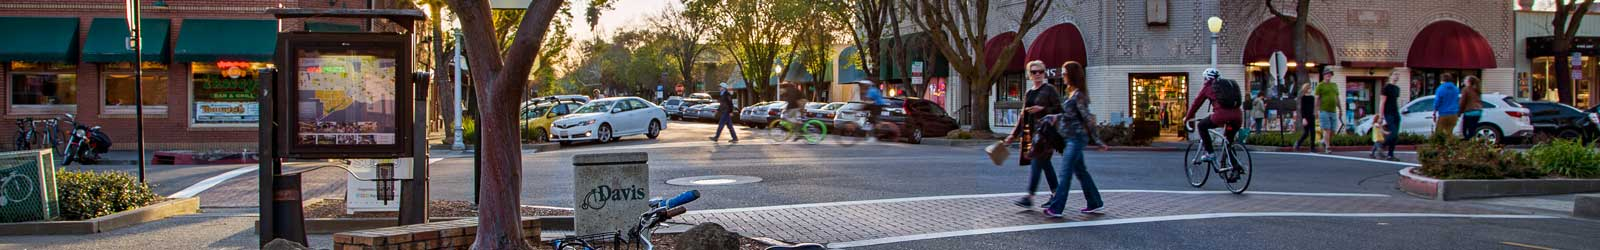 Panoramic photo of the City of Davis with women crossing the street and a biker riding.